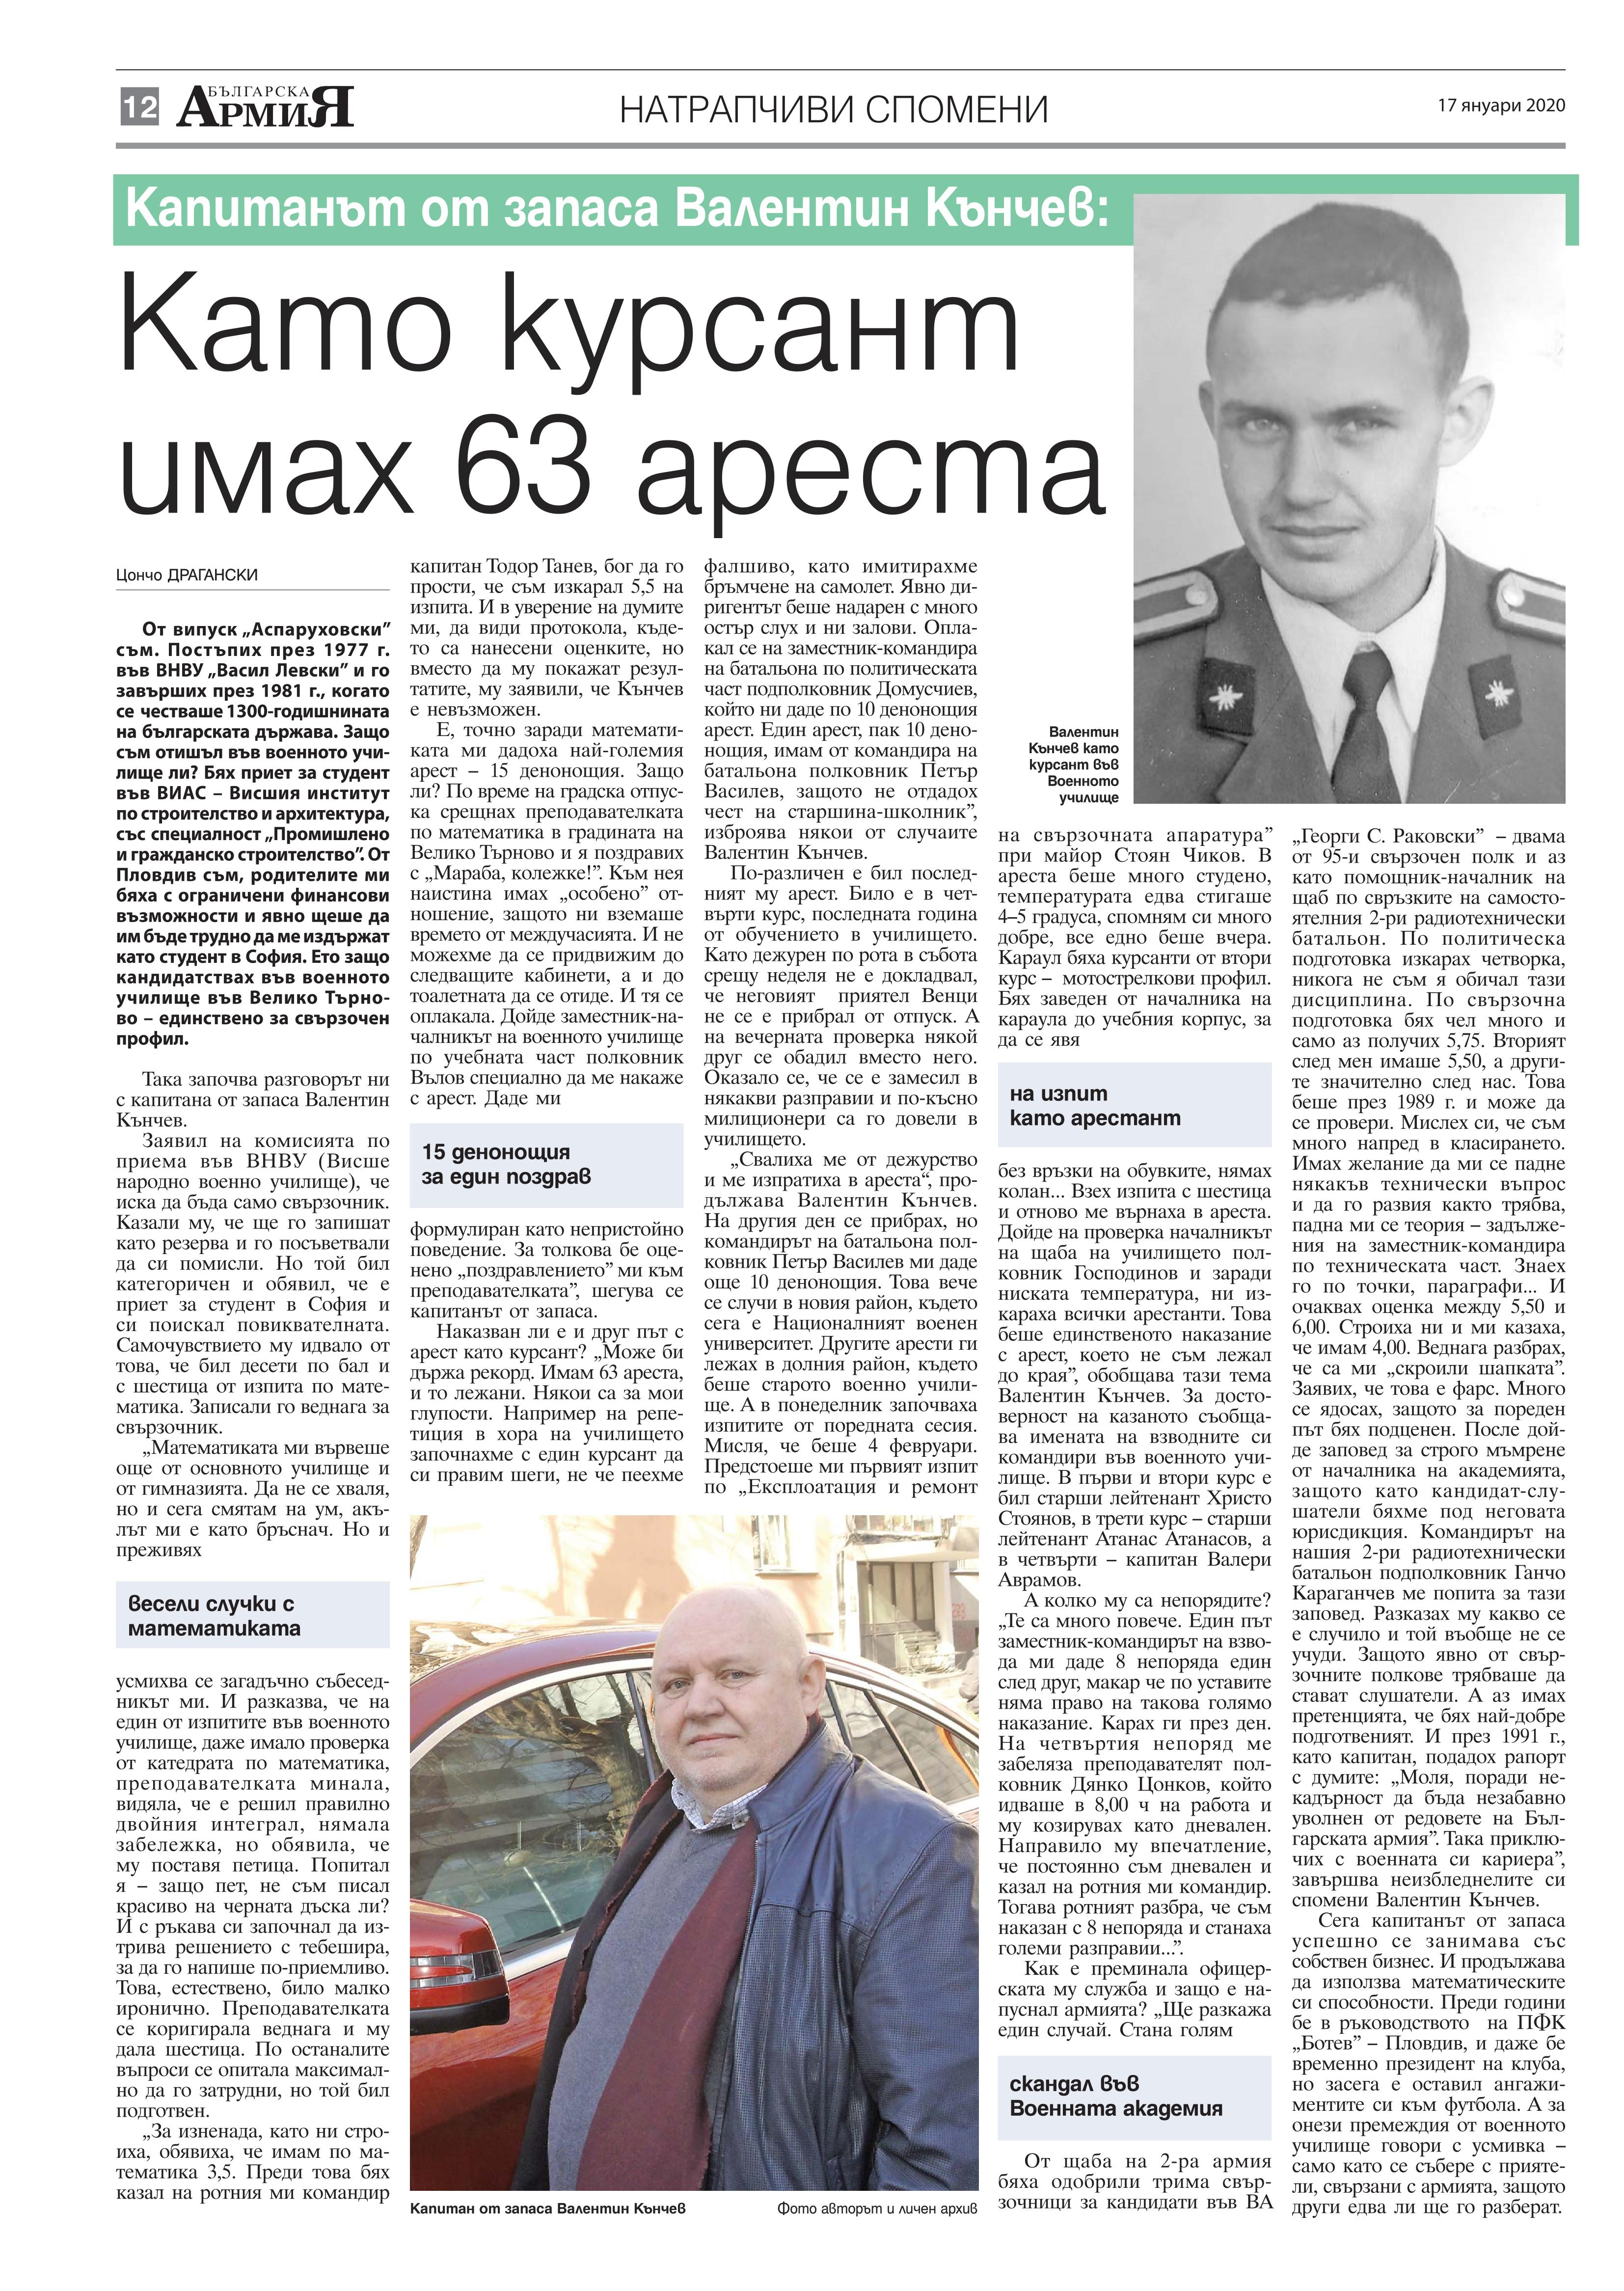 https://www.armymedia.bg/wp-content/uploads/2015/06/12.page1_-122.jpg